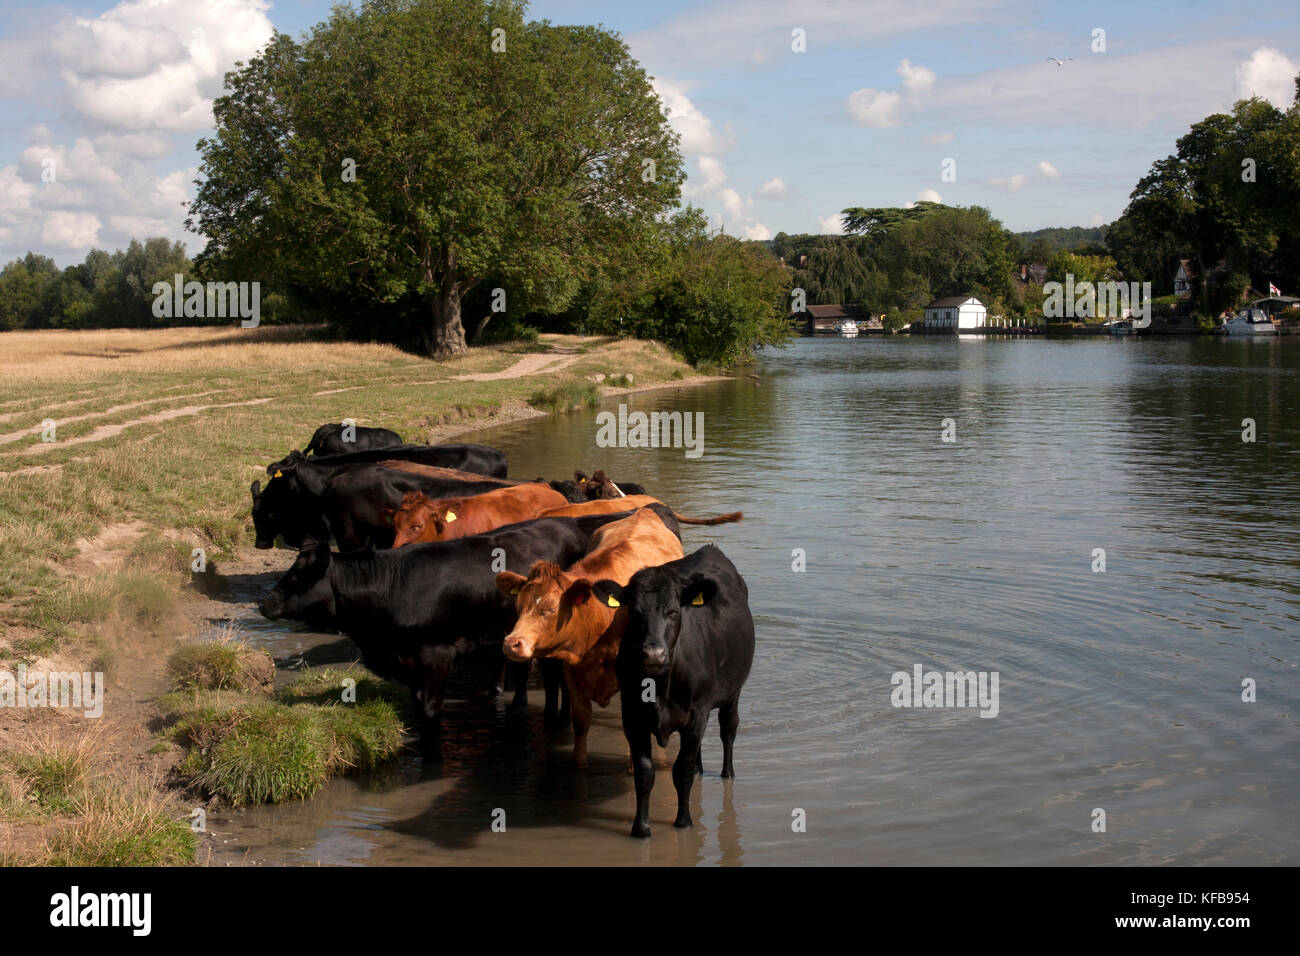 cattle bathing in River Thames, Cookham, near High Wycombe, Buckinghamshire, England - Stock Image